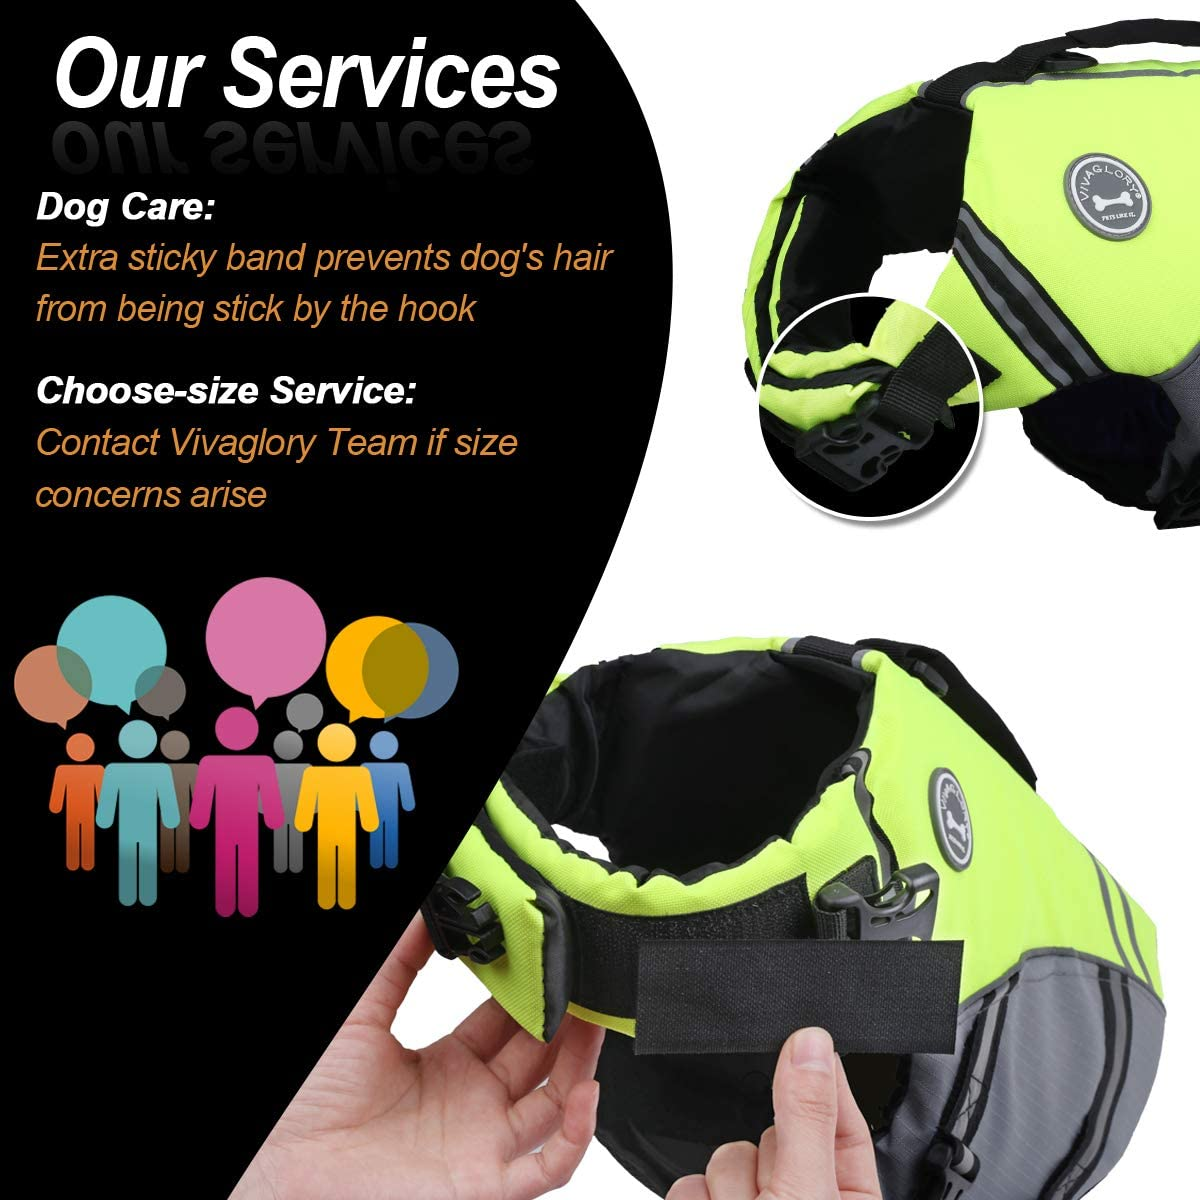 VIVAGLORY New Sports Style Ripstop Dog Life Jacket for Small Dogs with Superior Buoyancy /& Rescue Handle Bright Yellow